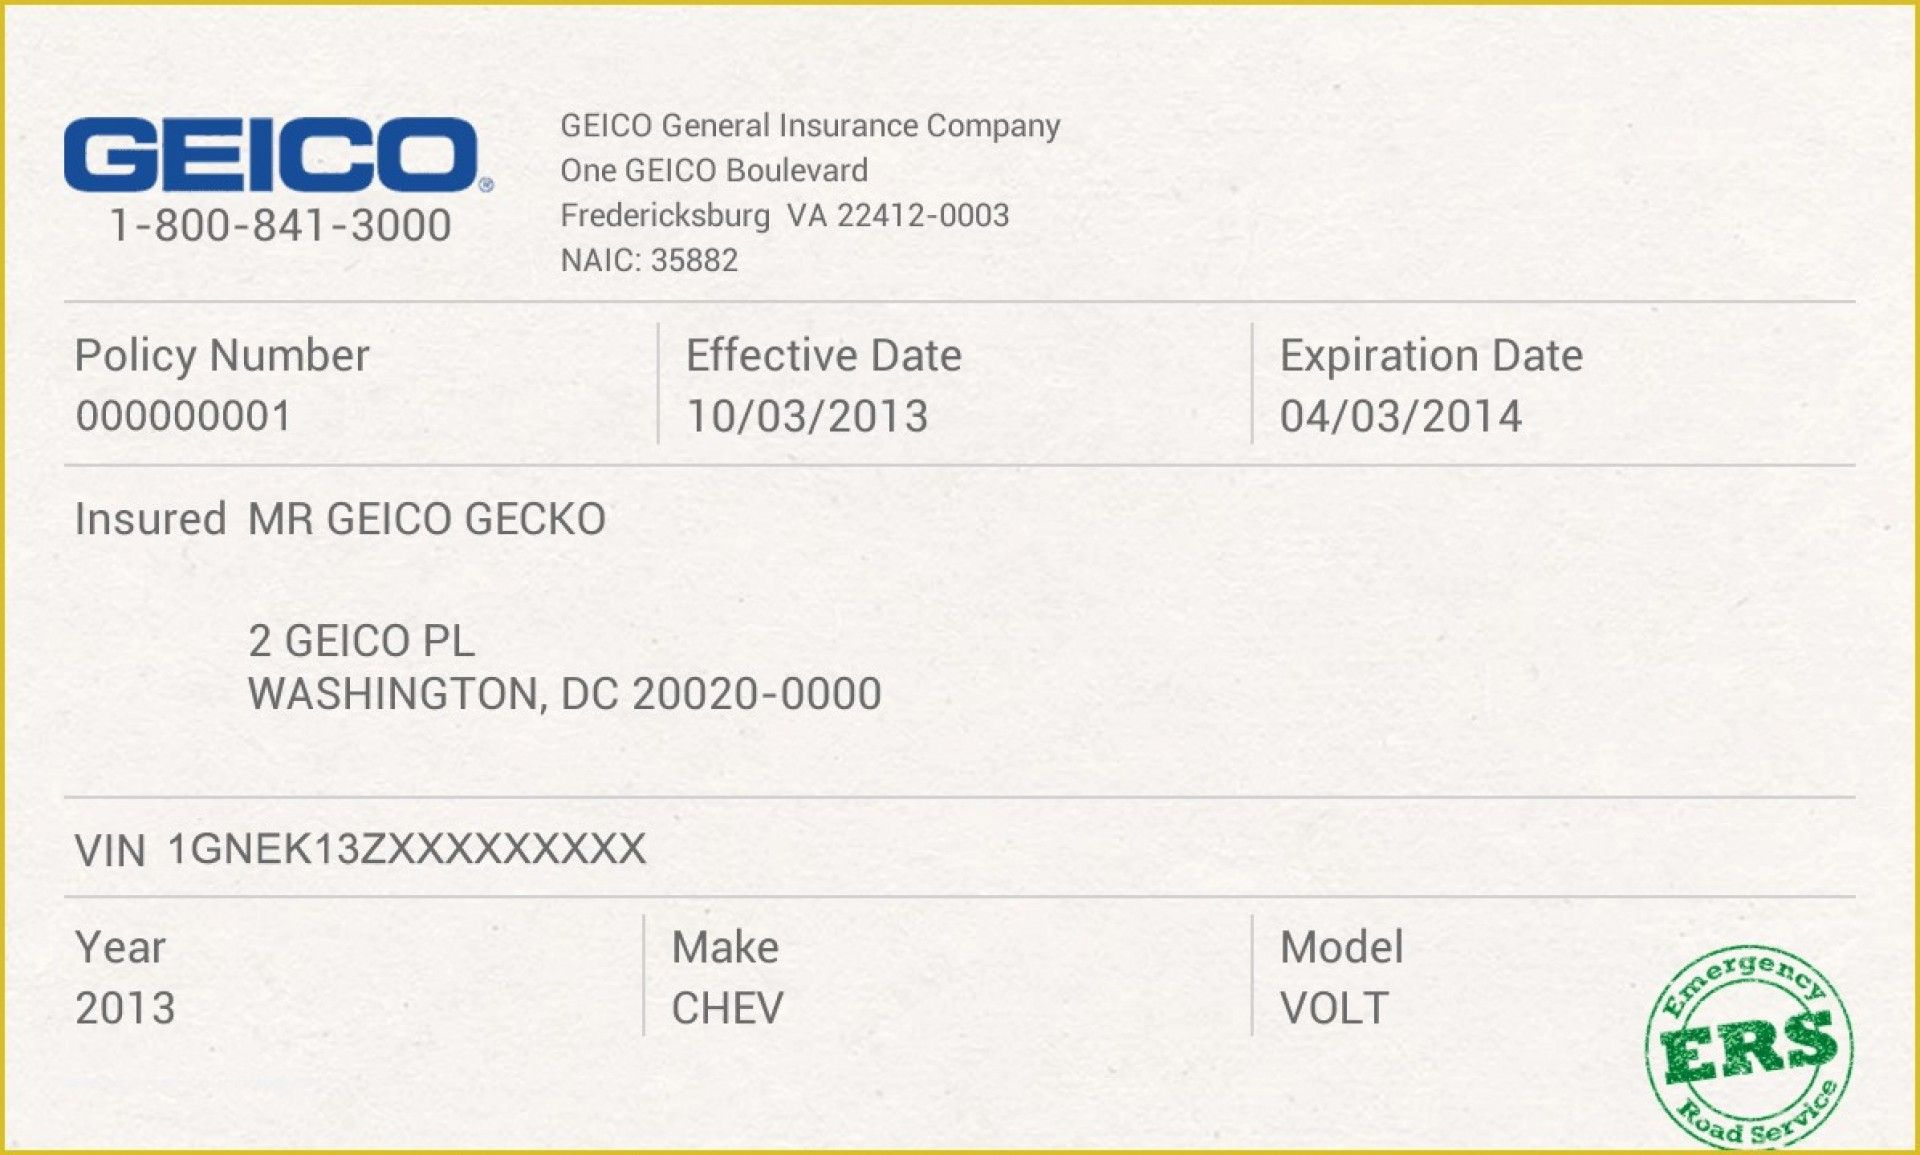 012 Company Car Policy Template Free Auto Insurance Id Card